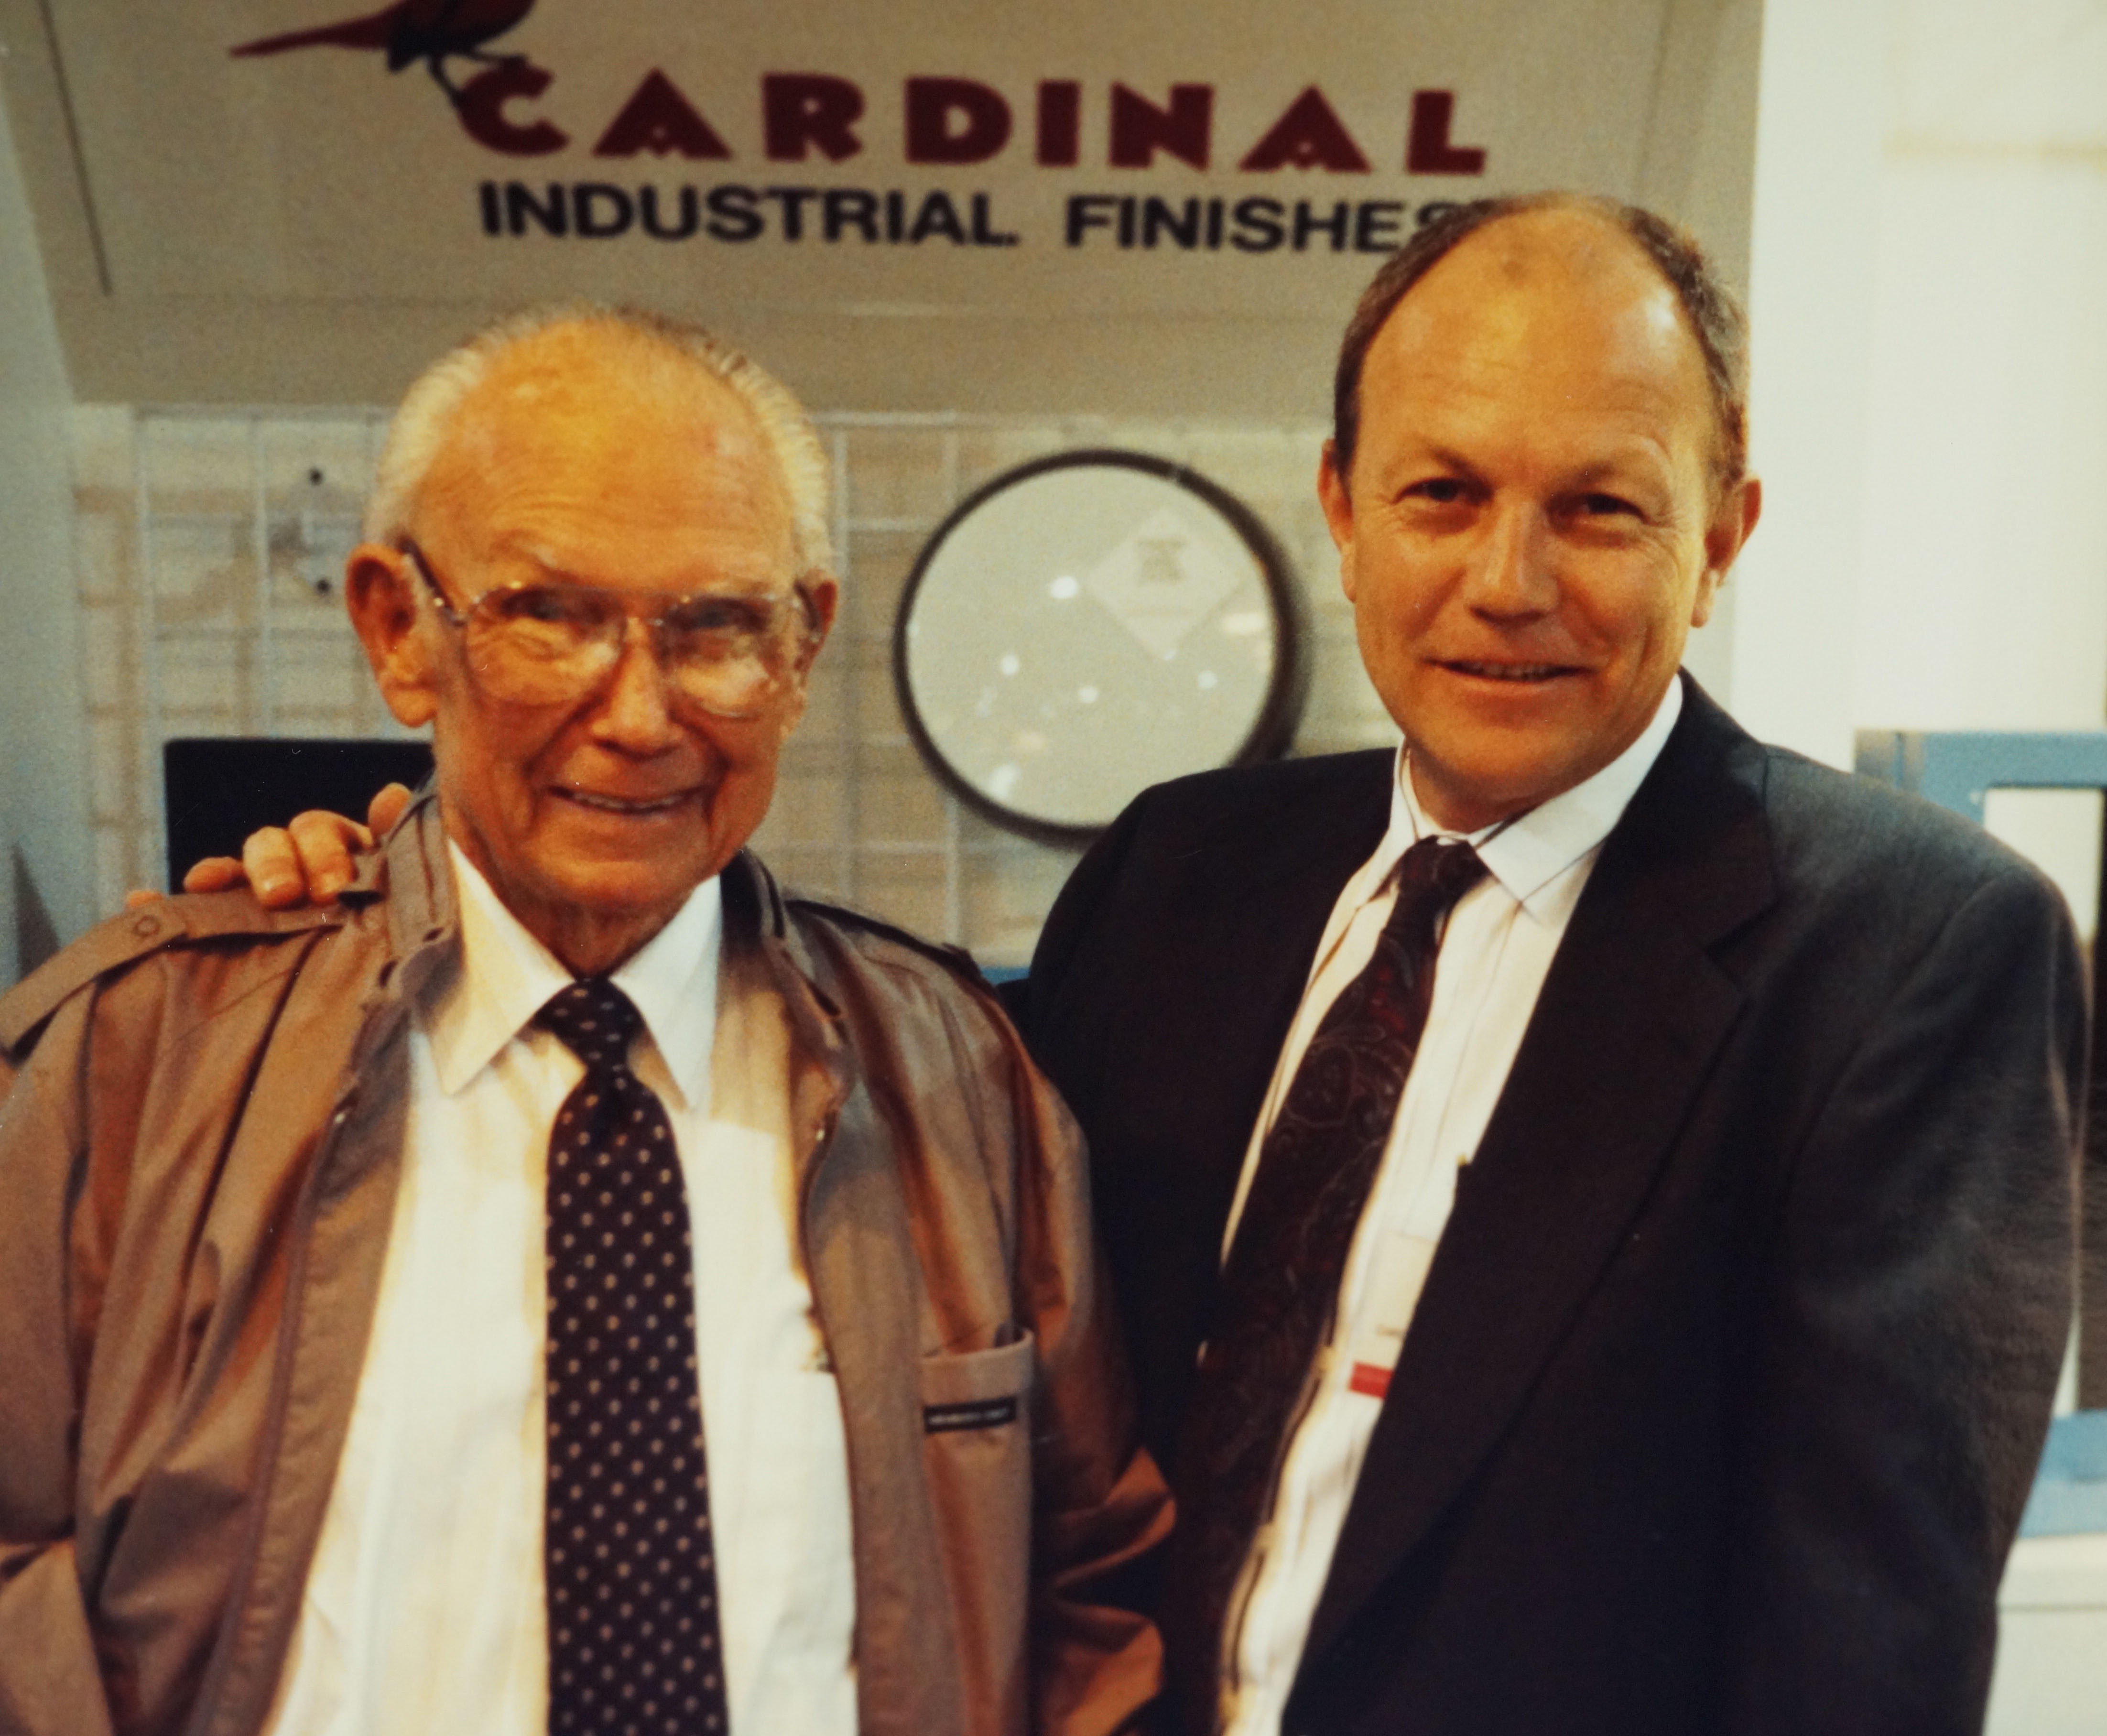 Stanley Ekstrom becomes President of Cardinal